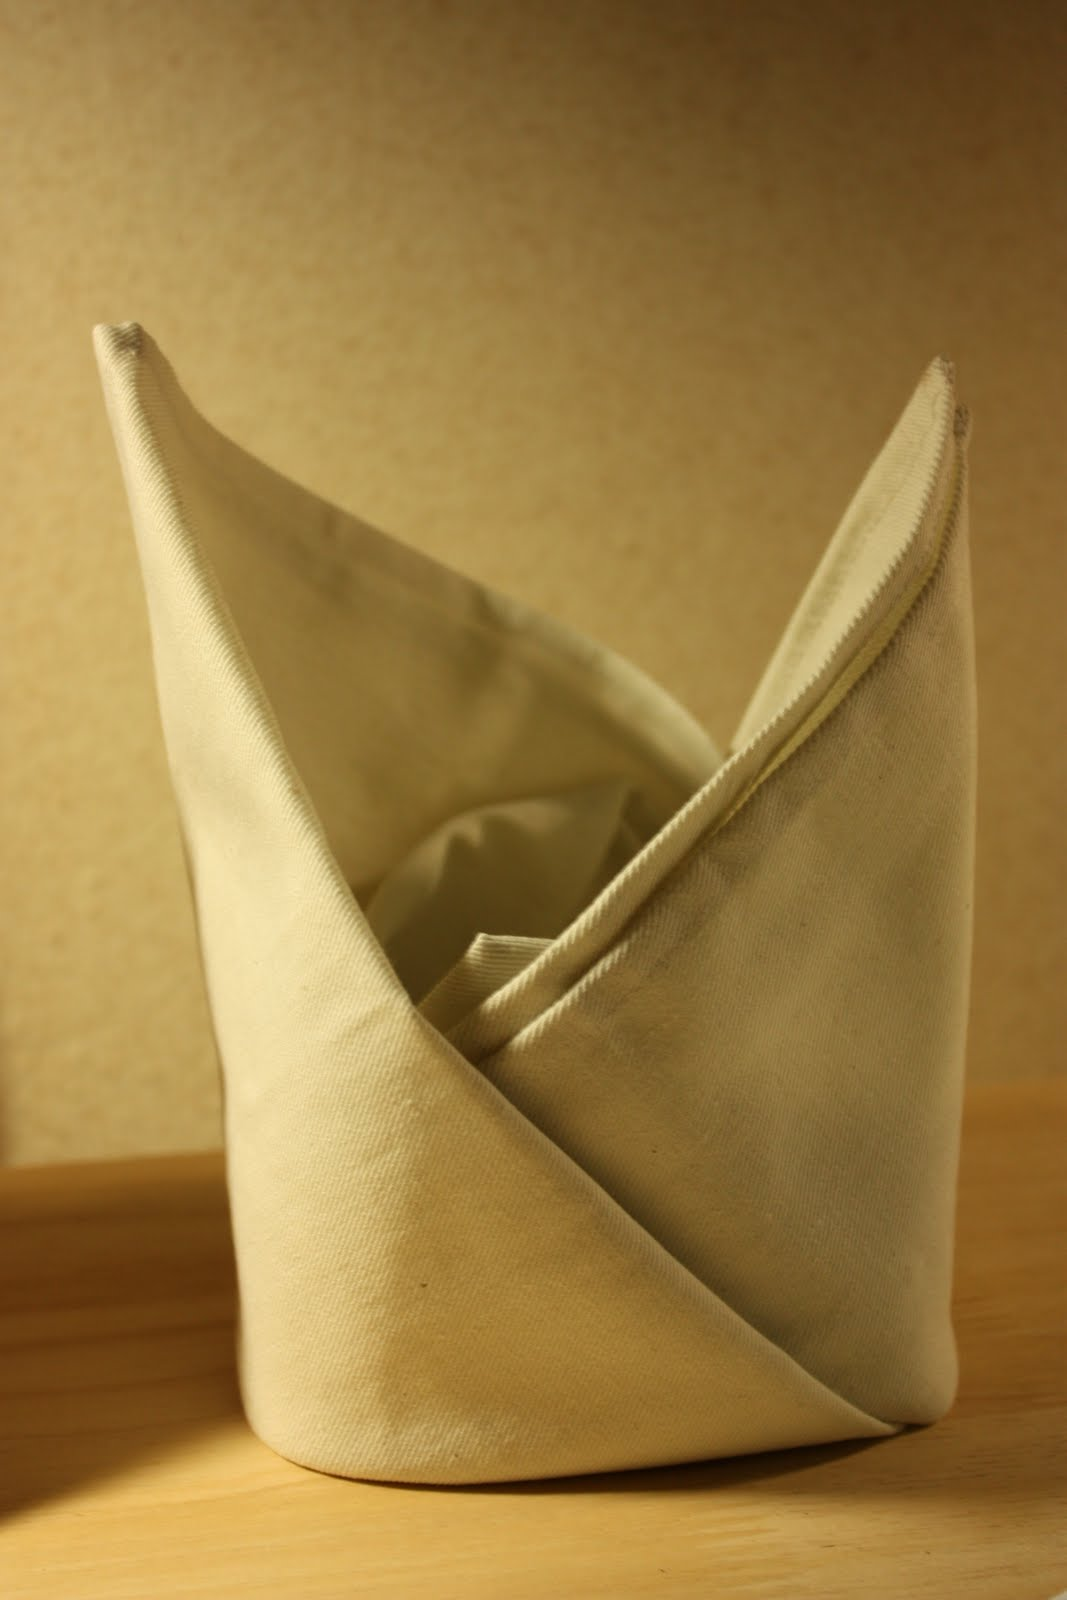 Table Napkin Folding : ... in Thai Art and Culture - Assignment 8: Table Napkin Folding Method